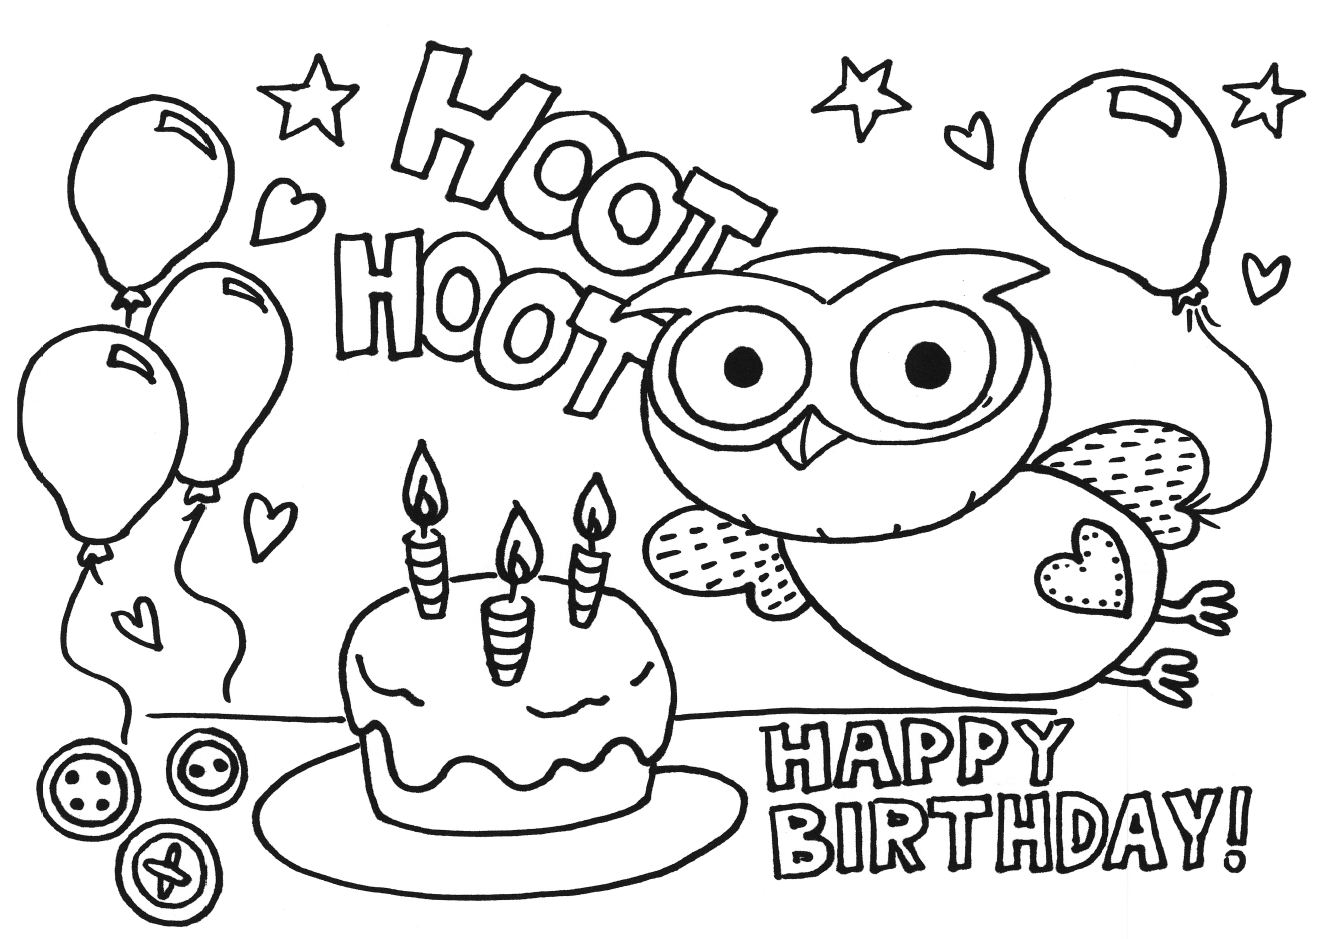 birthday coloring pages ; Happy-birthday-coloring-pages-for-kids